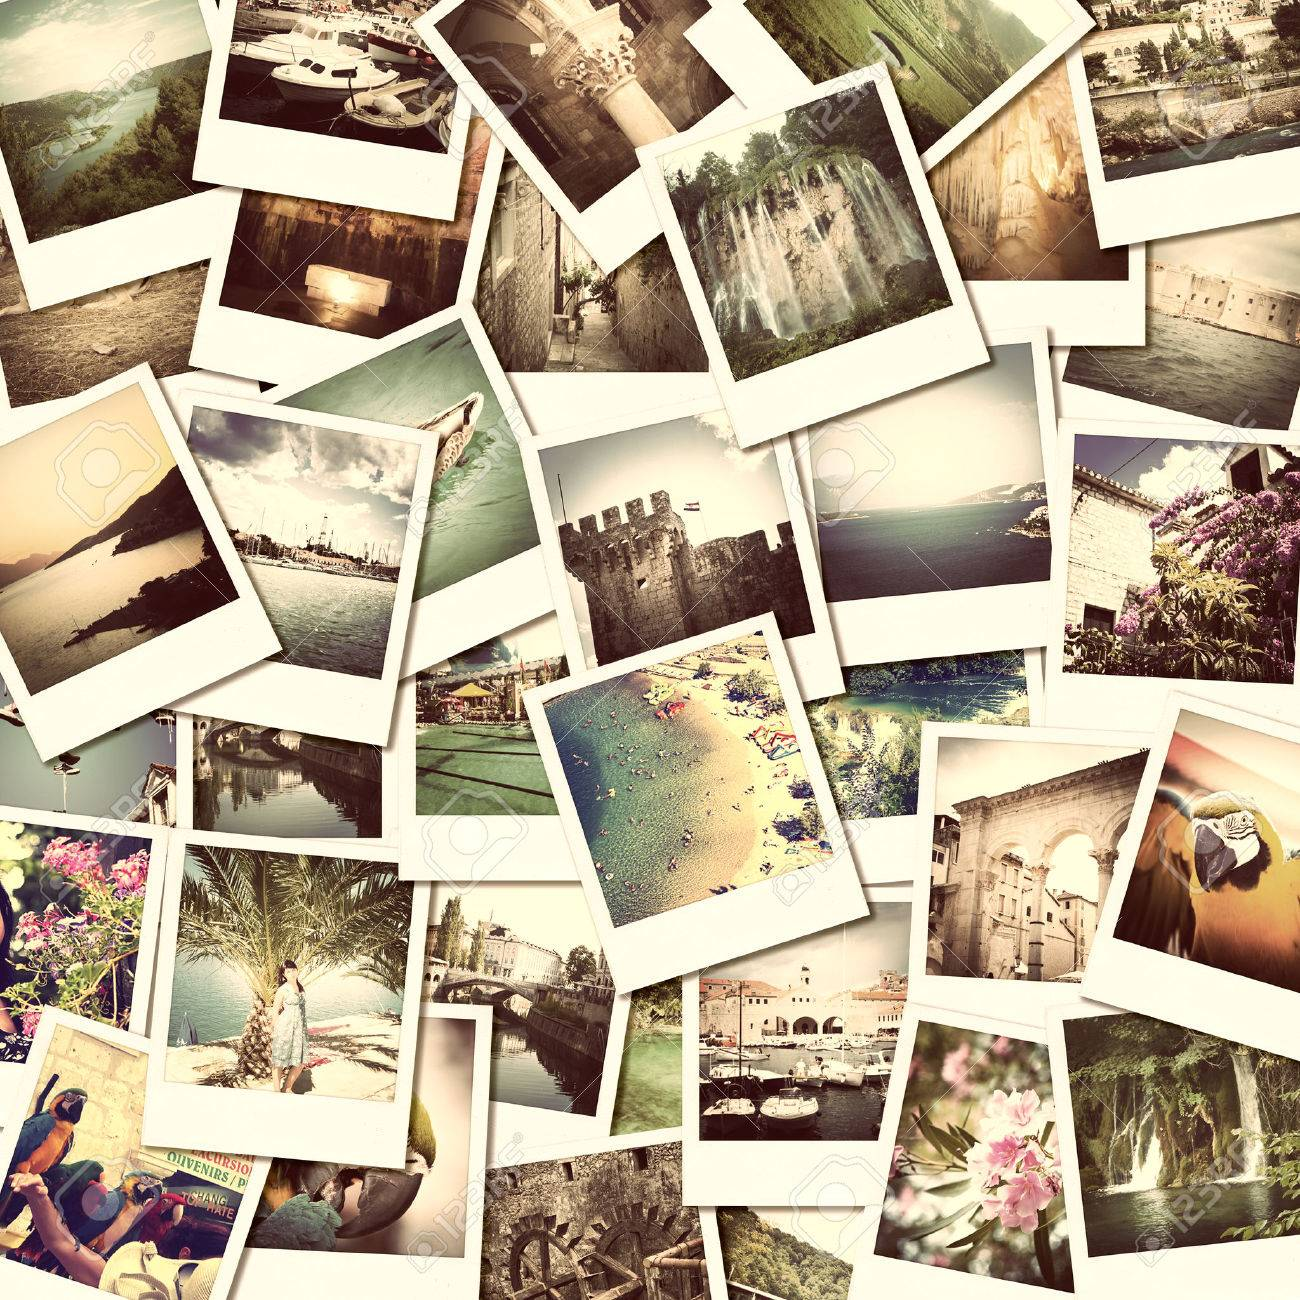 mosaic with pictures of different places and landscapes, snapshots uploaded to social networking services Stock Photo - 28321485